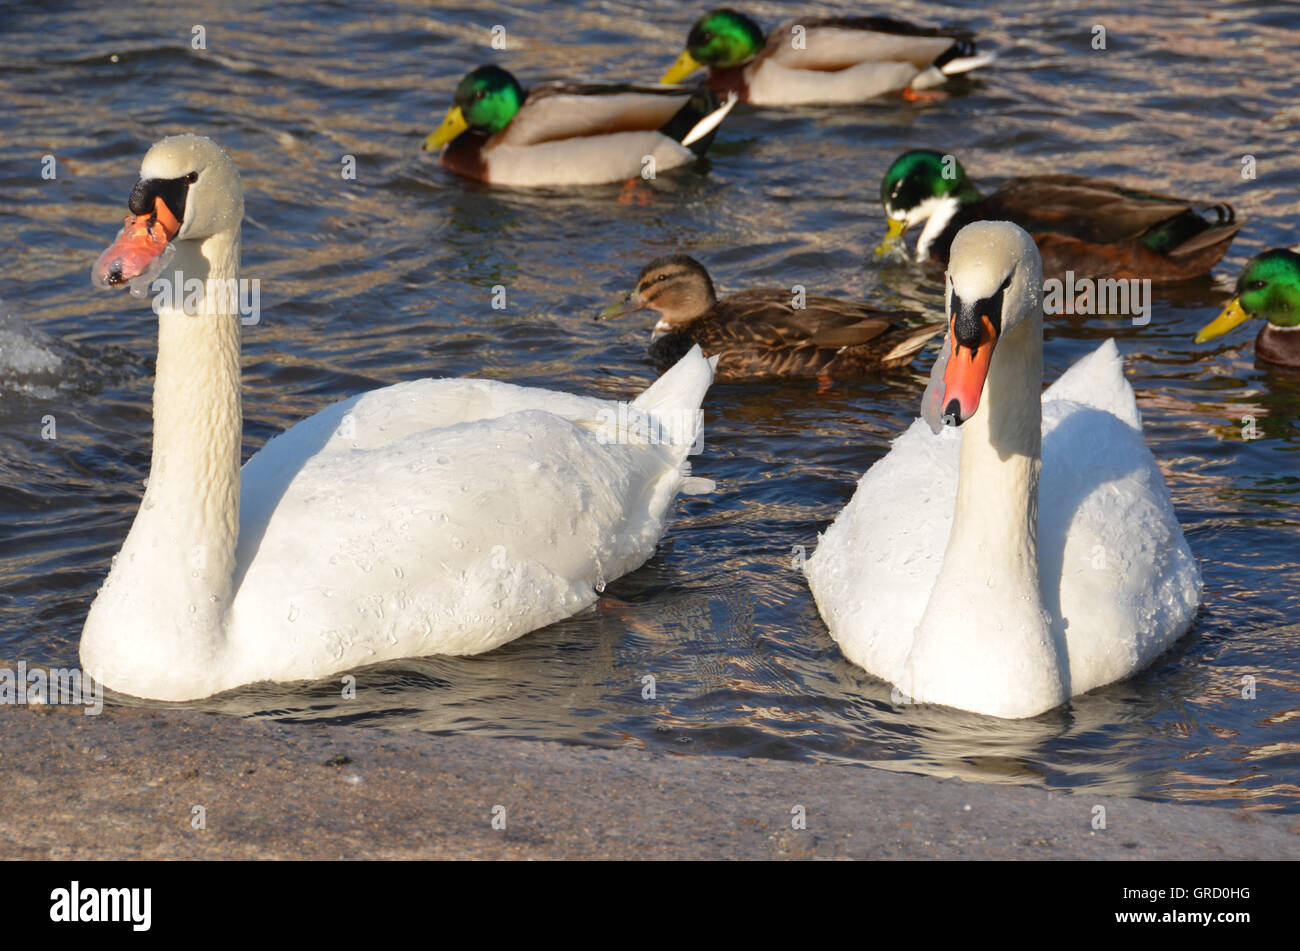 Two Swans With Beaks Frozen In The Cold Winter On The Water, And Some Ducks - Stock Image